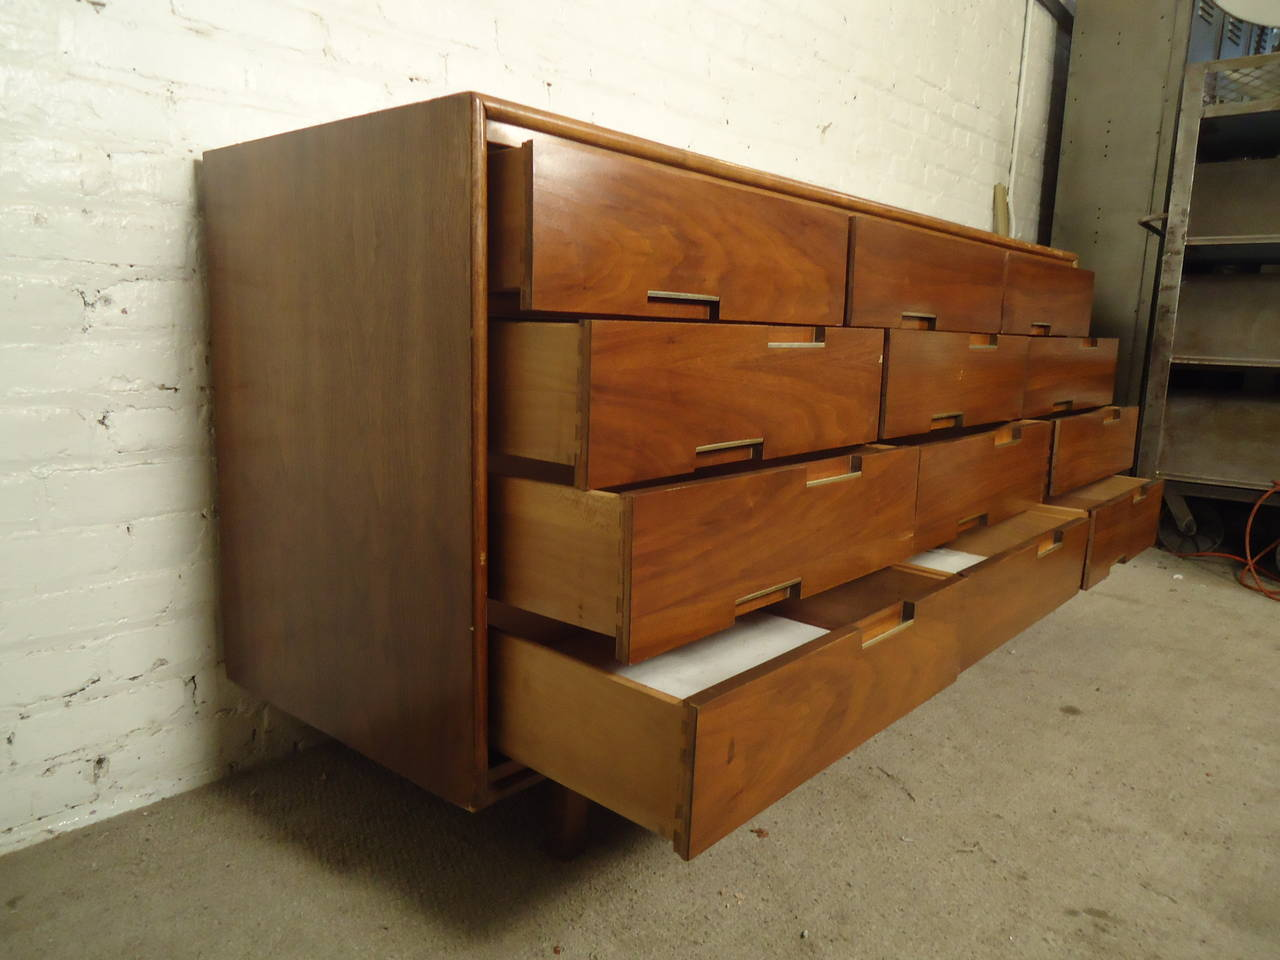 Midcentury Credenza by Cavalier with Hidden Drawers For Sale 1